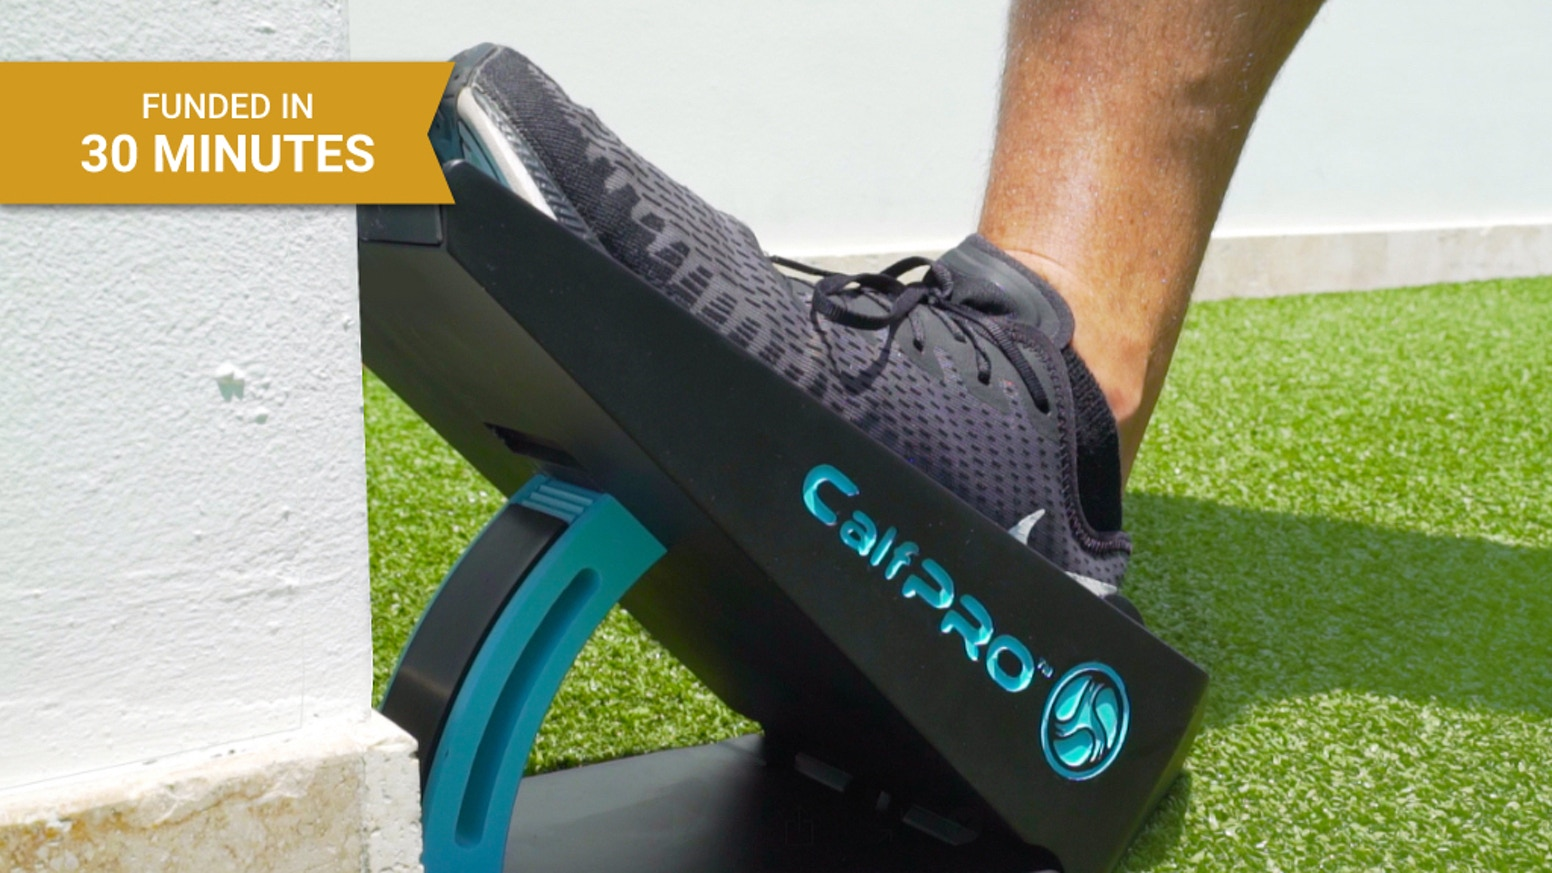 The Best & Easiest Way to Get the Deepest Calf Stretch Ever.